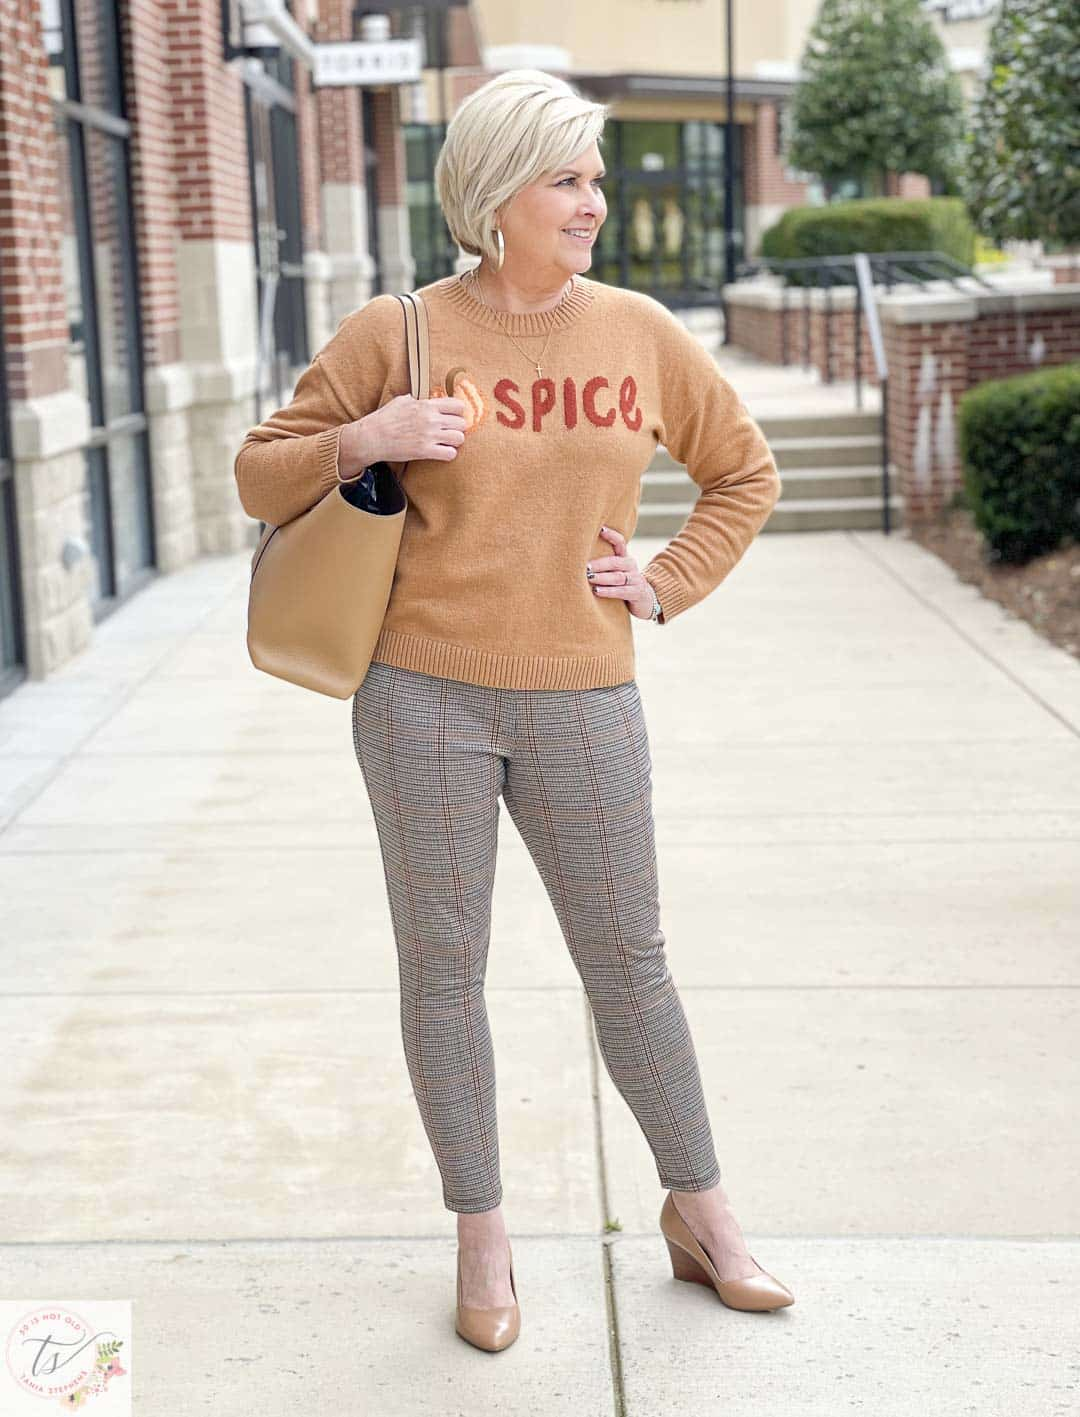 Over 40 Fashion Blogger, Tania Stephens, is wearing a Pumpkin Spice sweater with a pair of taupe wedges, and plaid Ponte knit pants